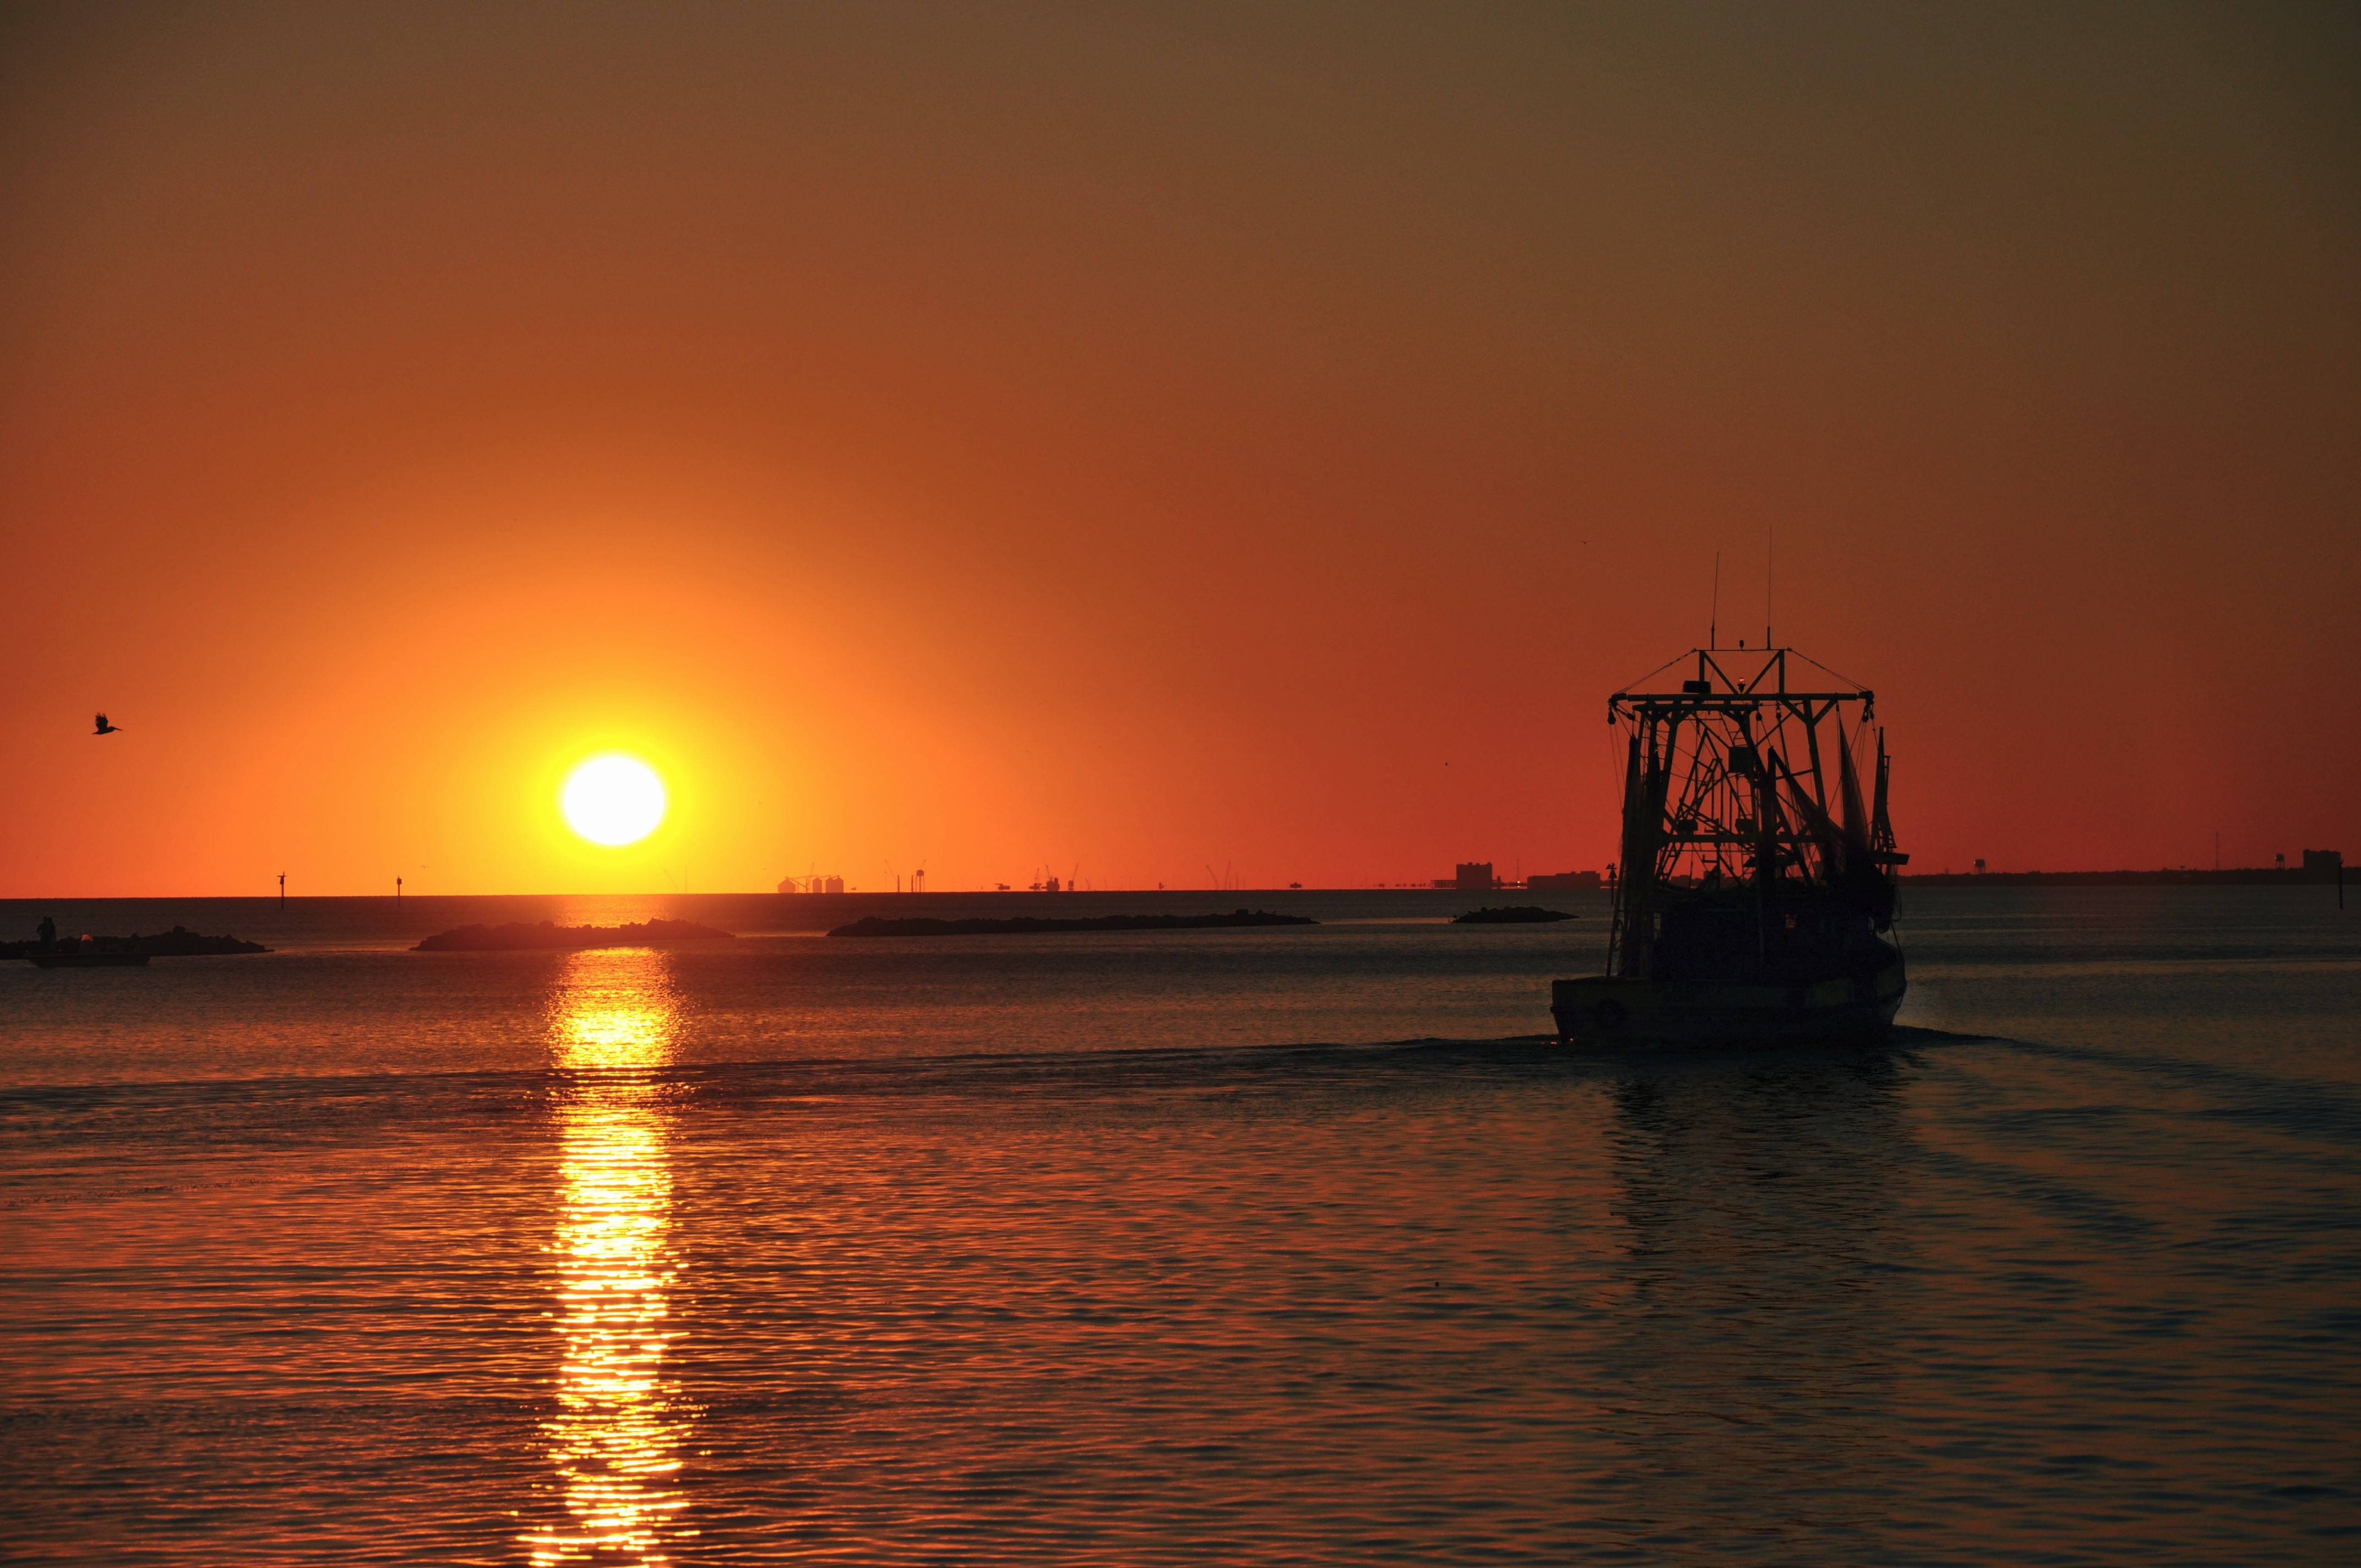 Shrimp boats depart Biloxi for a night of shrimping in the Gulf of Mexico.